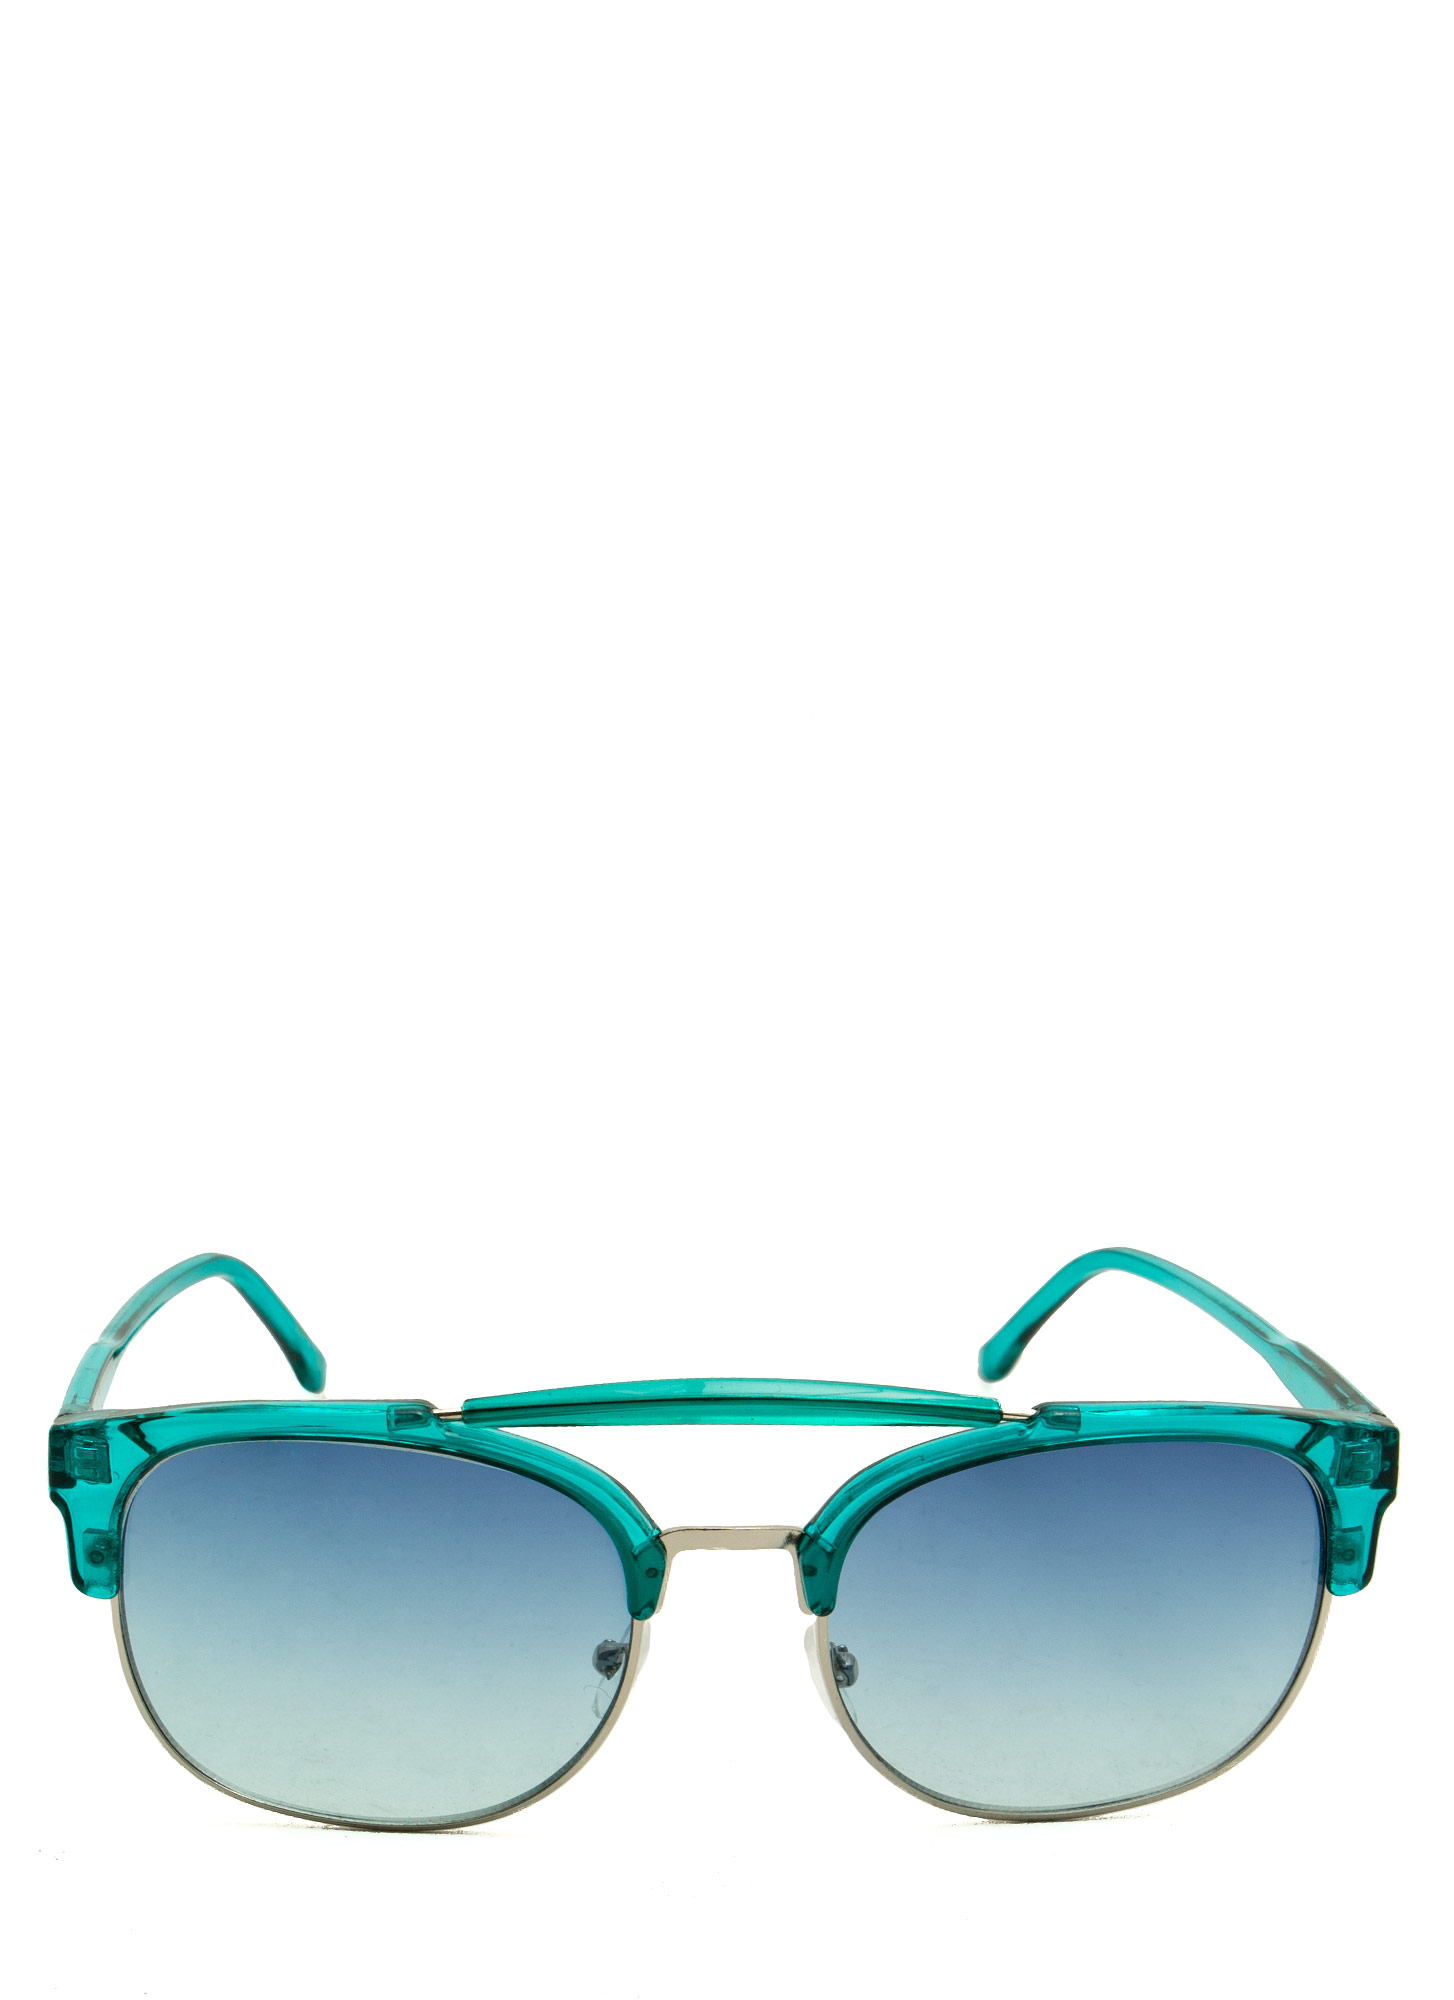 Top Bar Clubmaster Sunglasses TEALSILVER